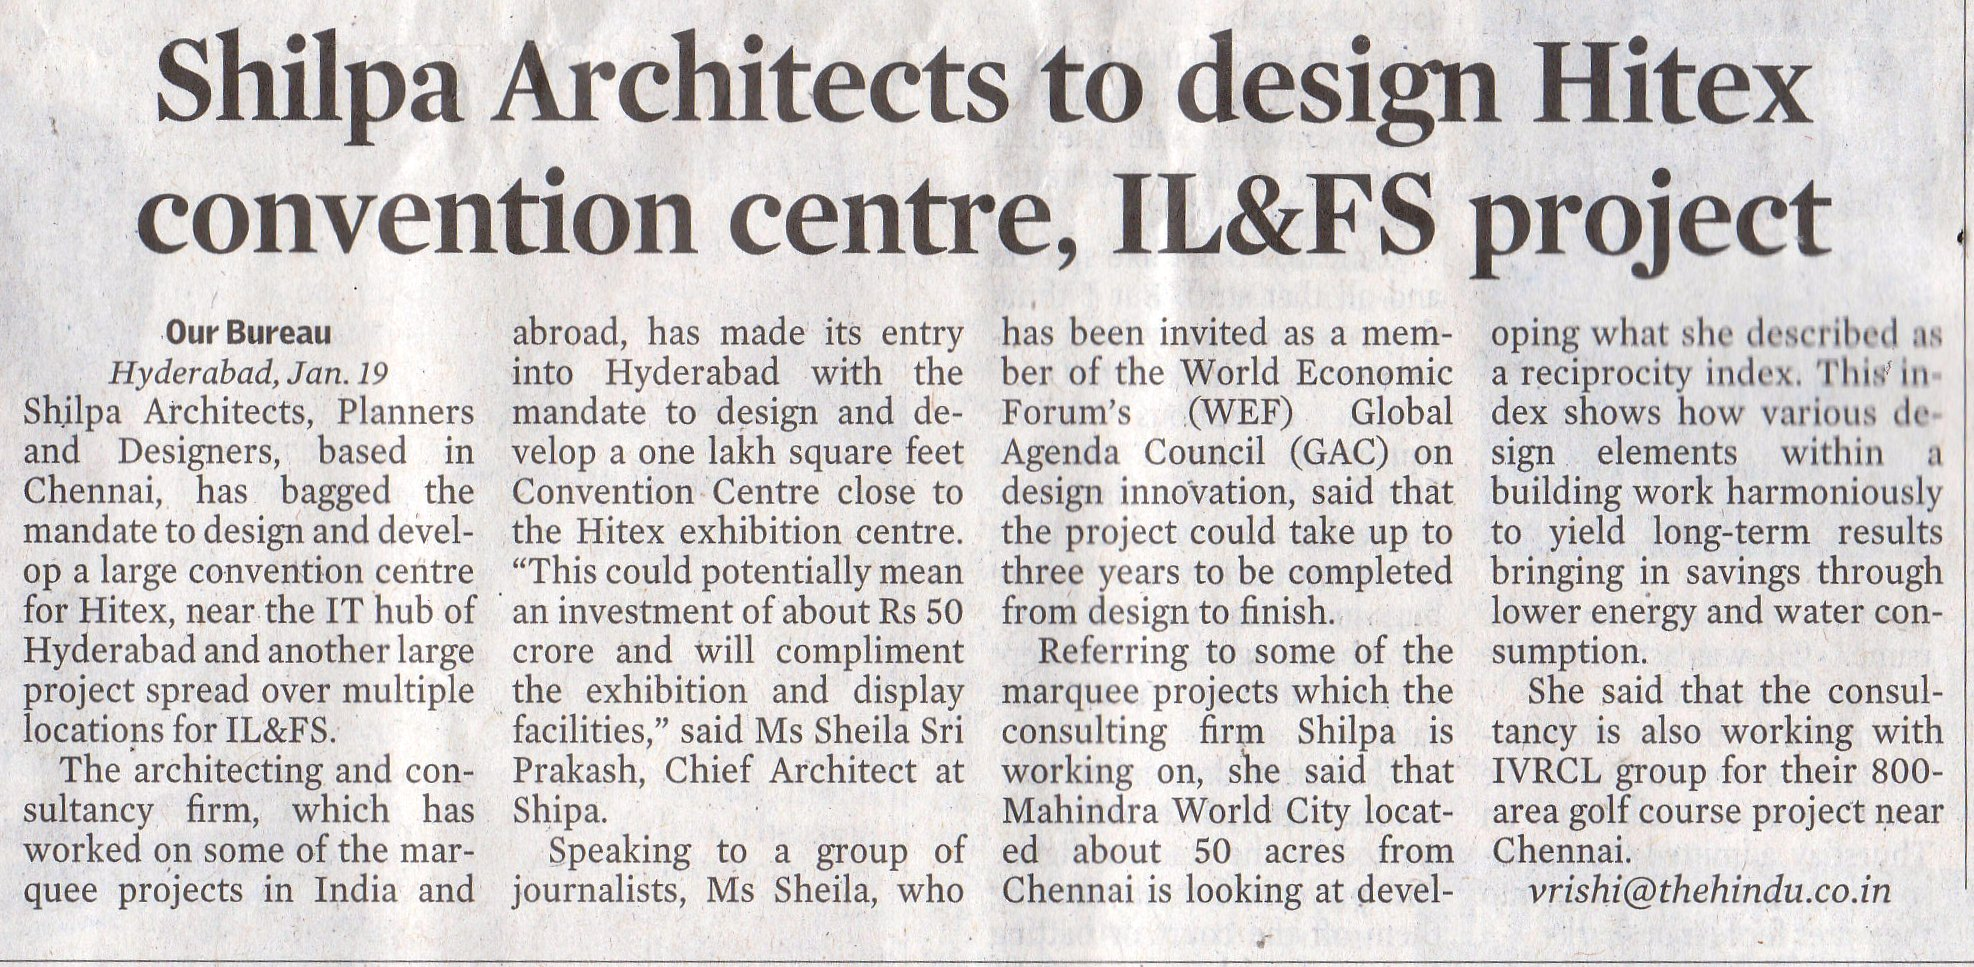 Hindu Business Line: Shilpa Architects to design Hitex convention centre, IL&FS project.